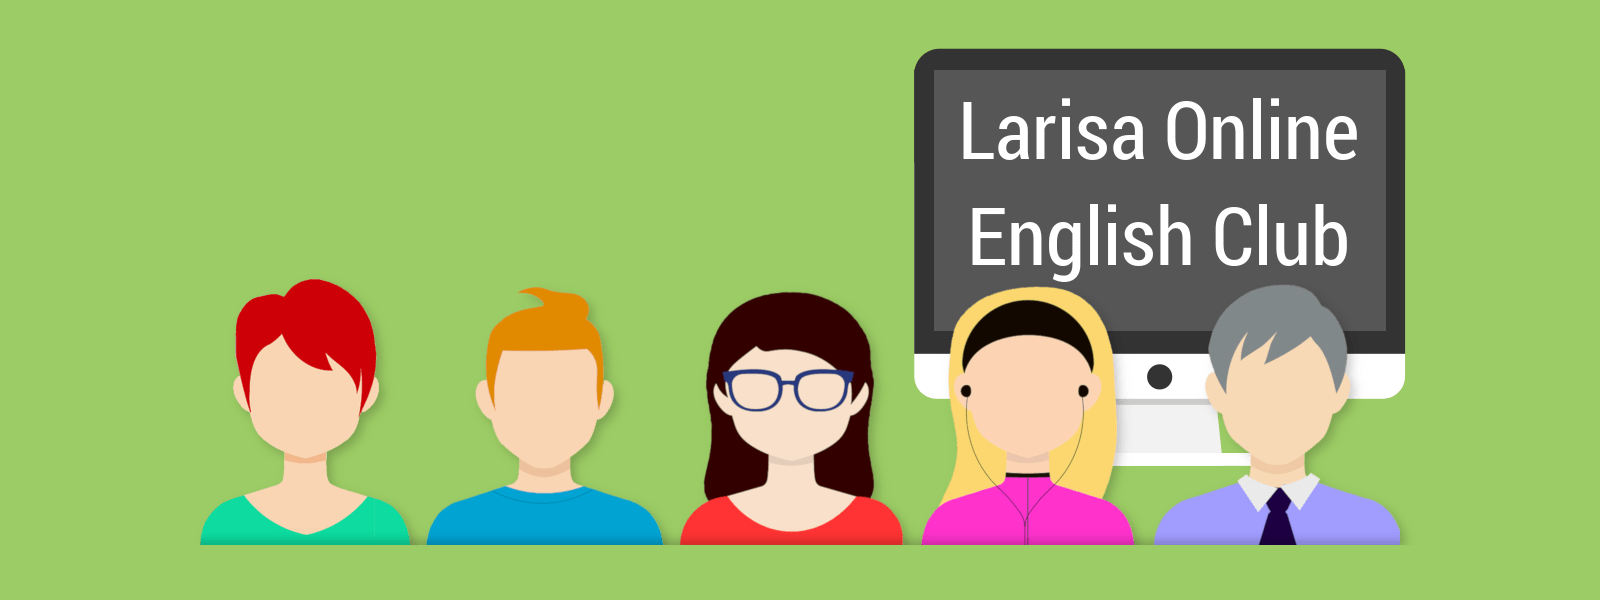 Larisa Online English Club